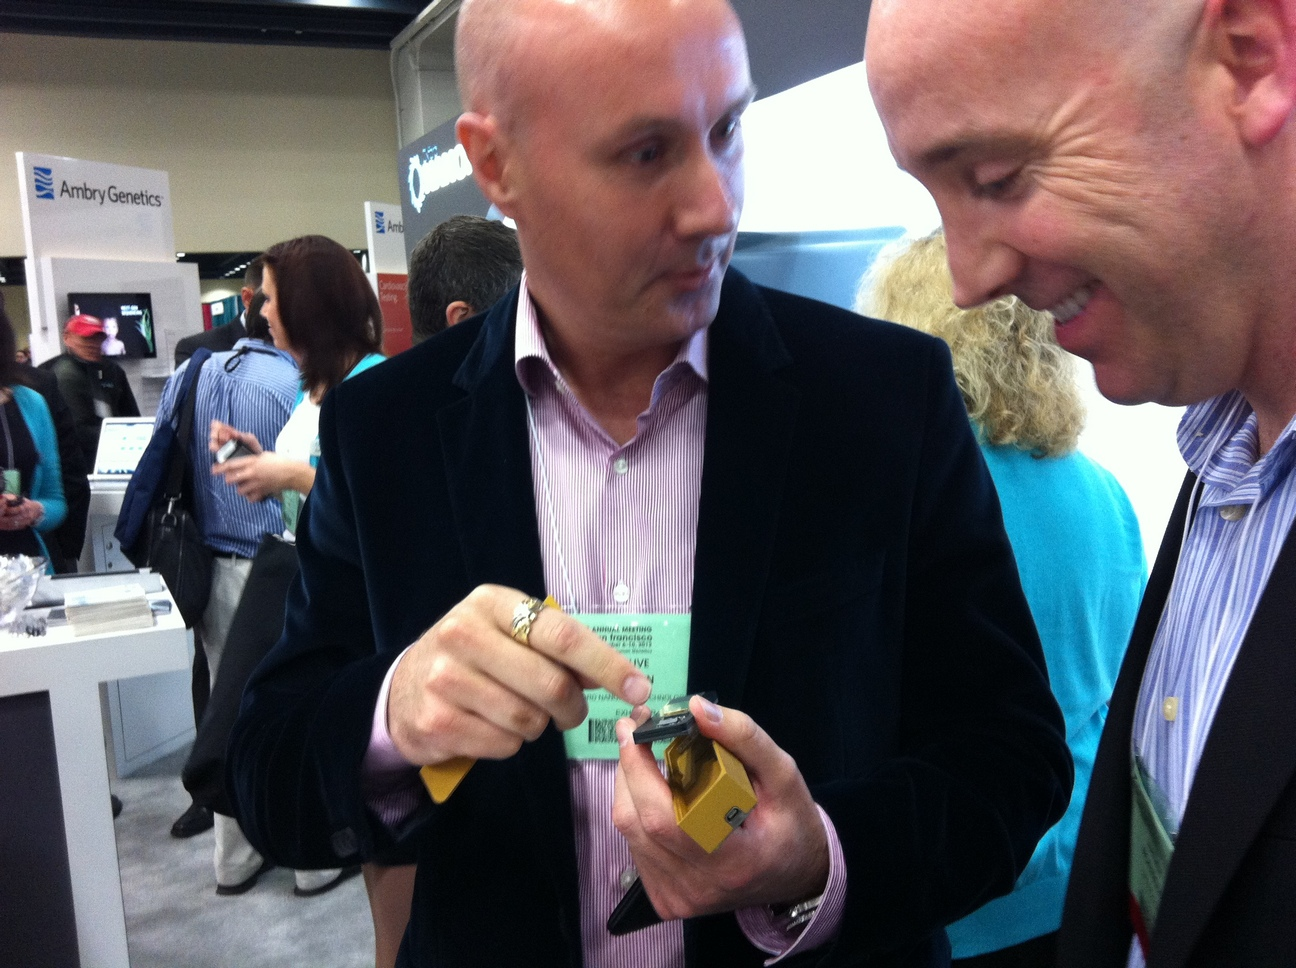 Clive Brown (left) showing the minION at their ASHG 2012 booth. Matthew Hickenbotham, colleague at Life Technologies, at right.